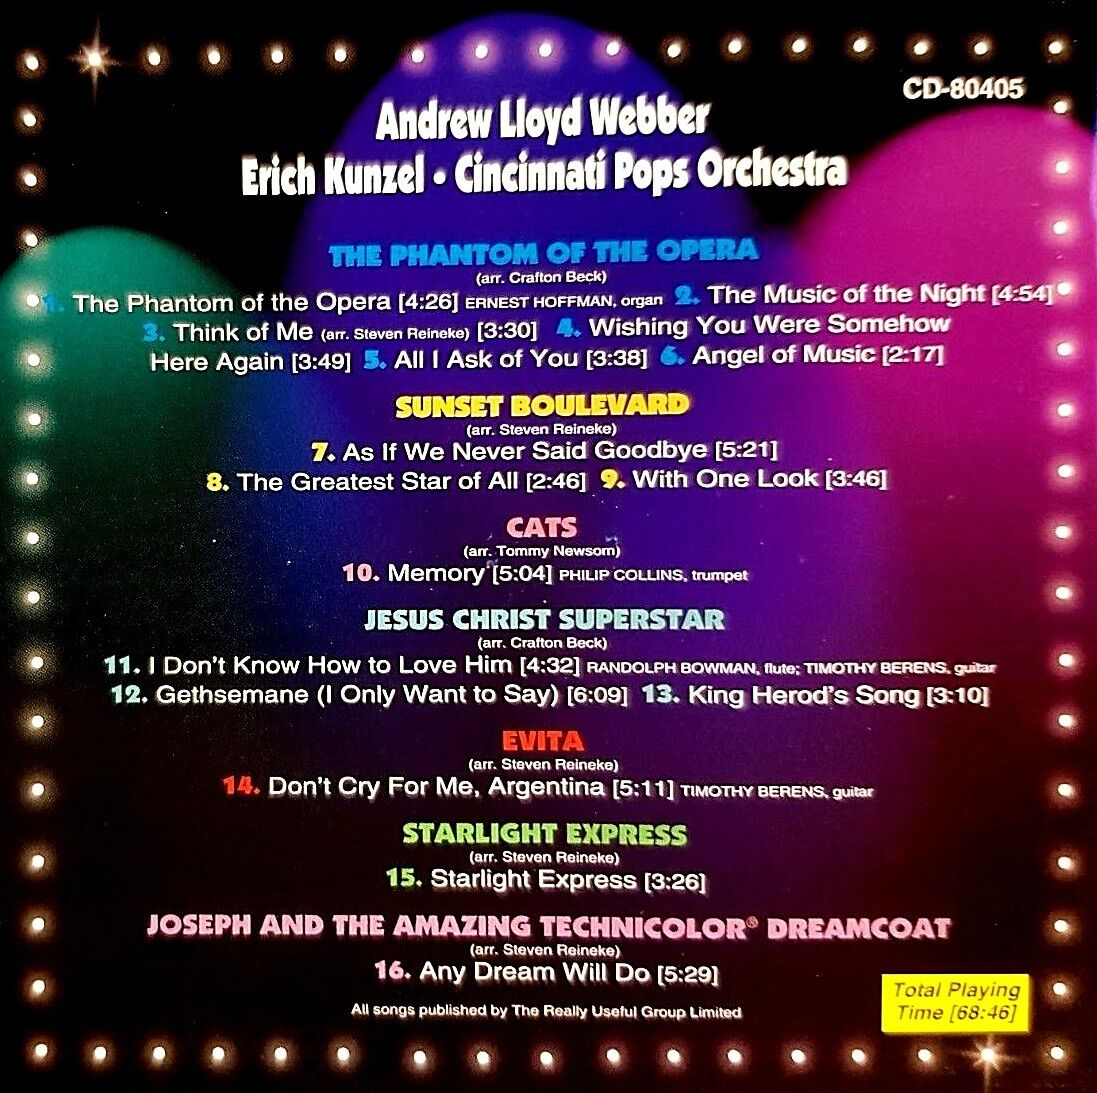 Audio CD - Broadway - Andrew Lloyd Webber By Erich Kunzel - Phantom Of The Opera - $14.99